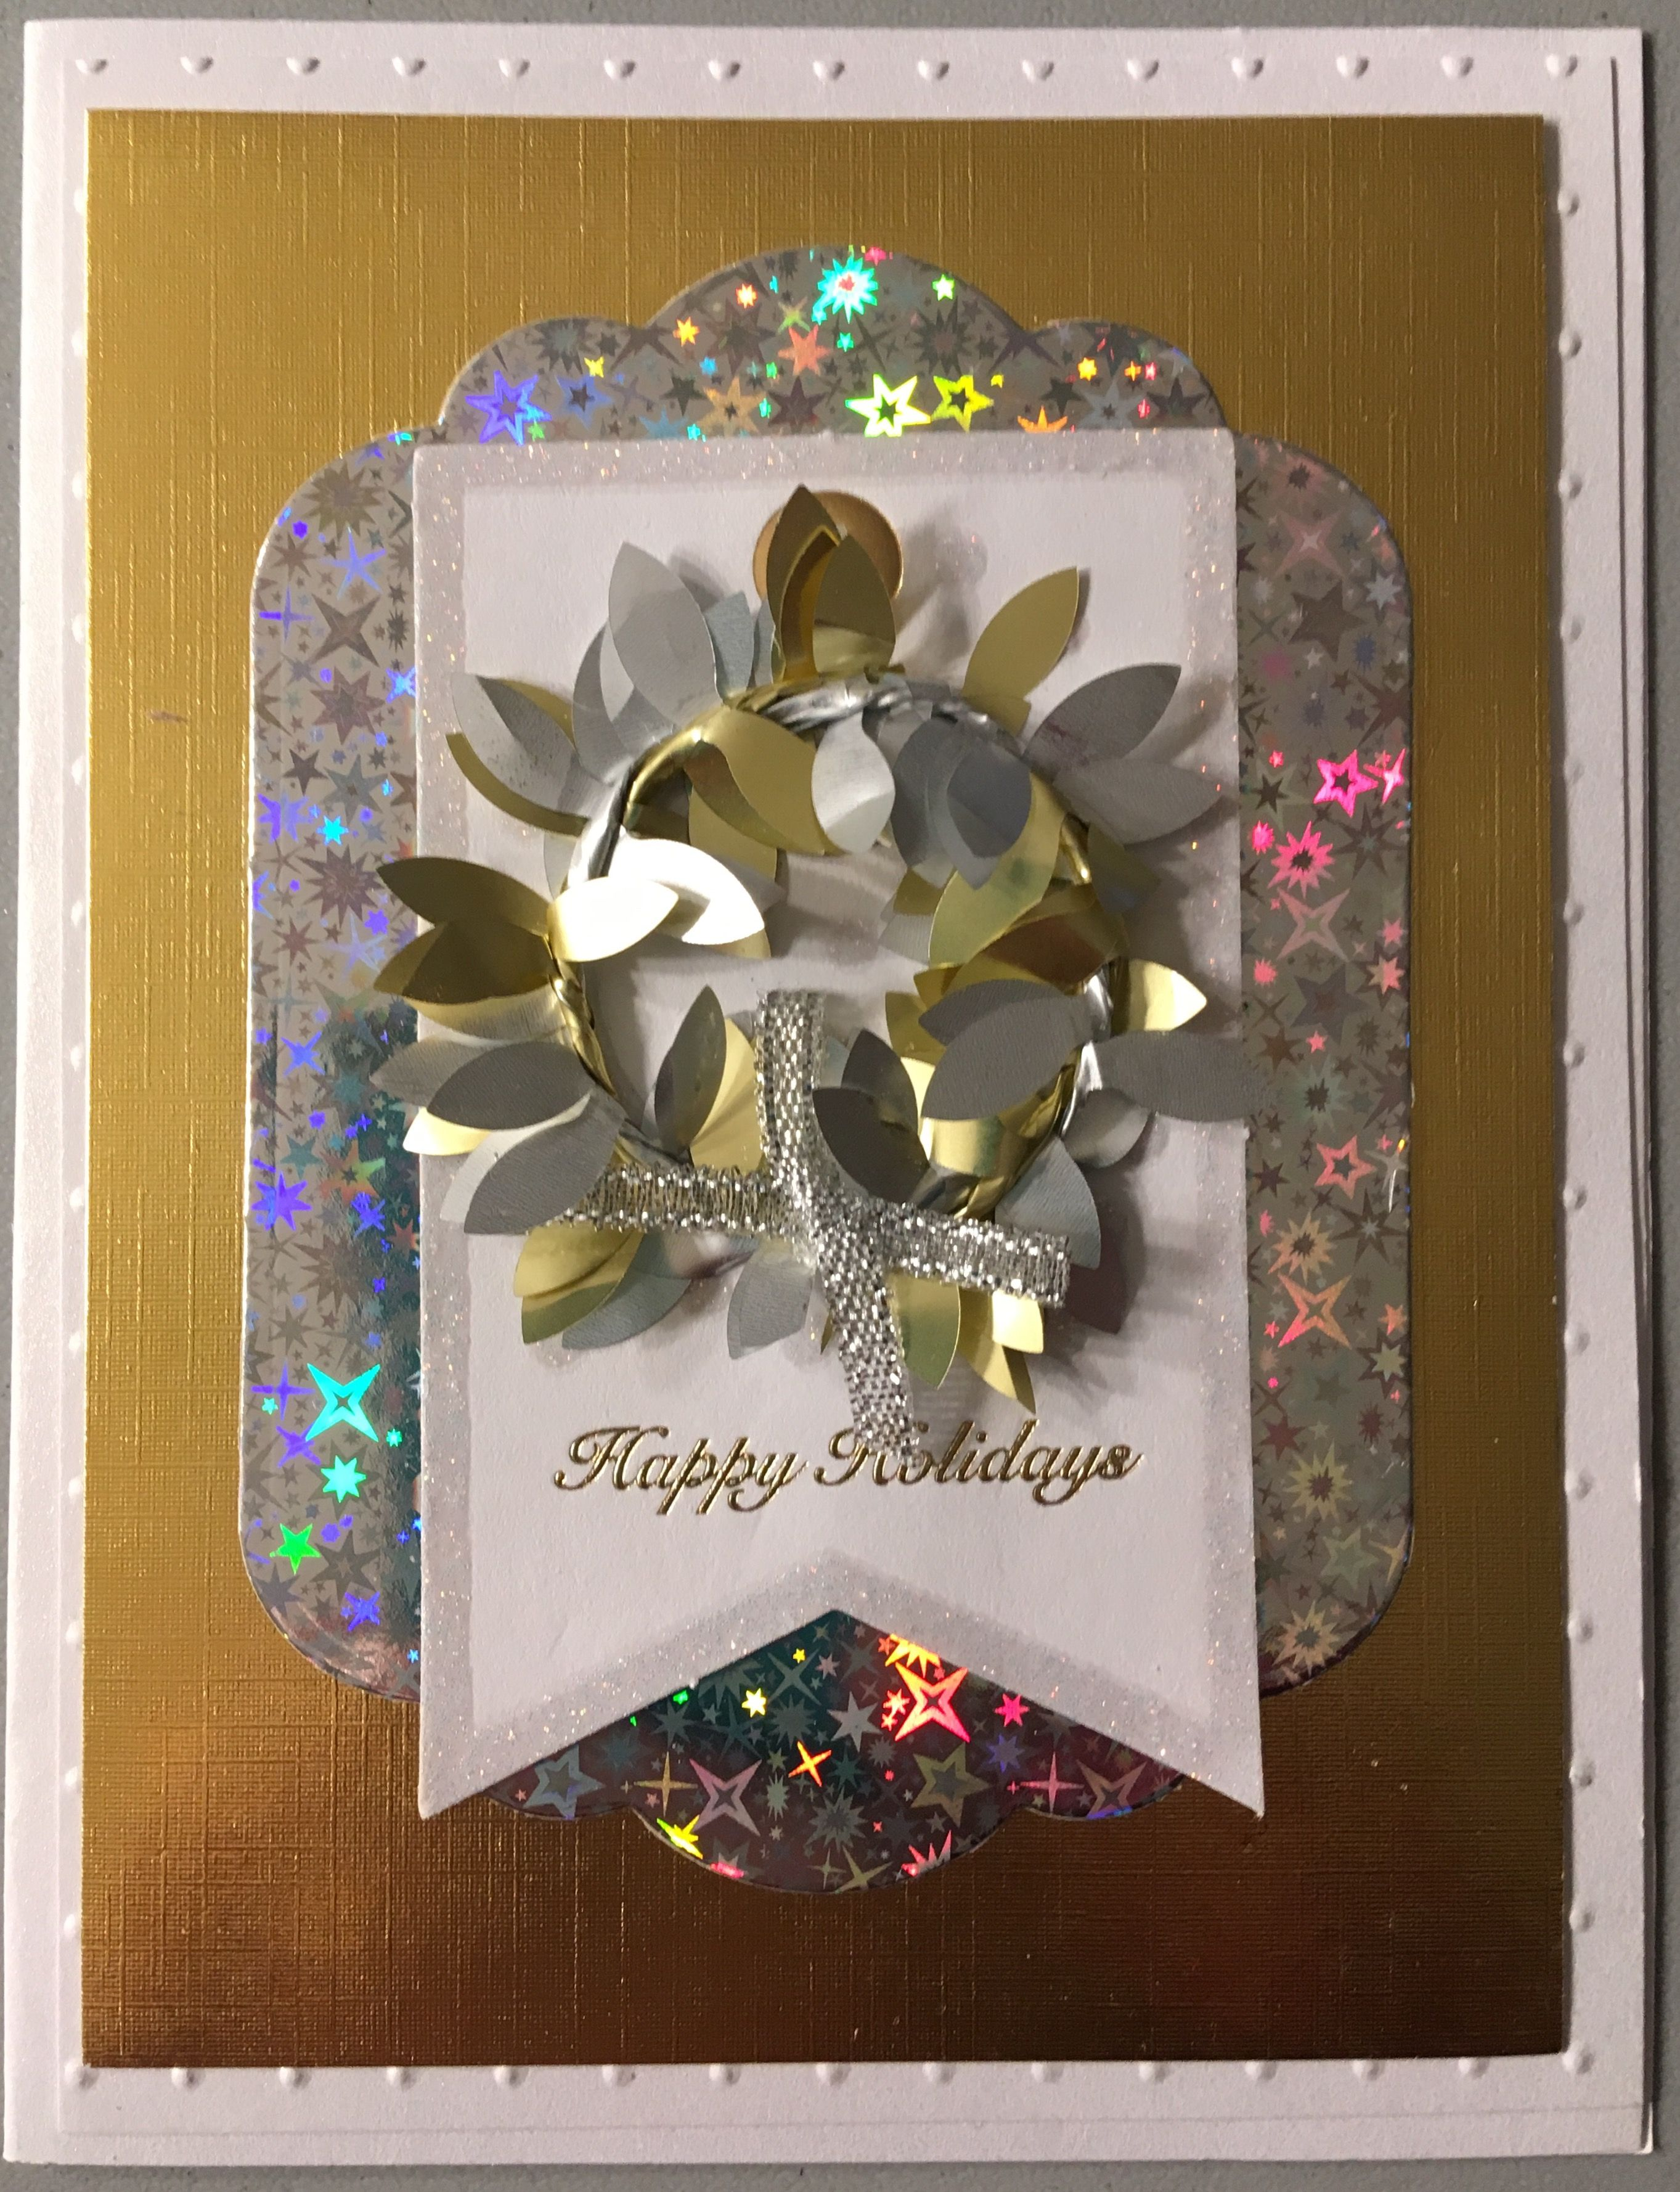 Pin By Kathie Hagenah On Costco Gift Tag Cards Pinterest Costco